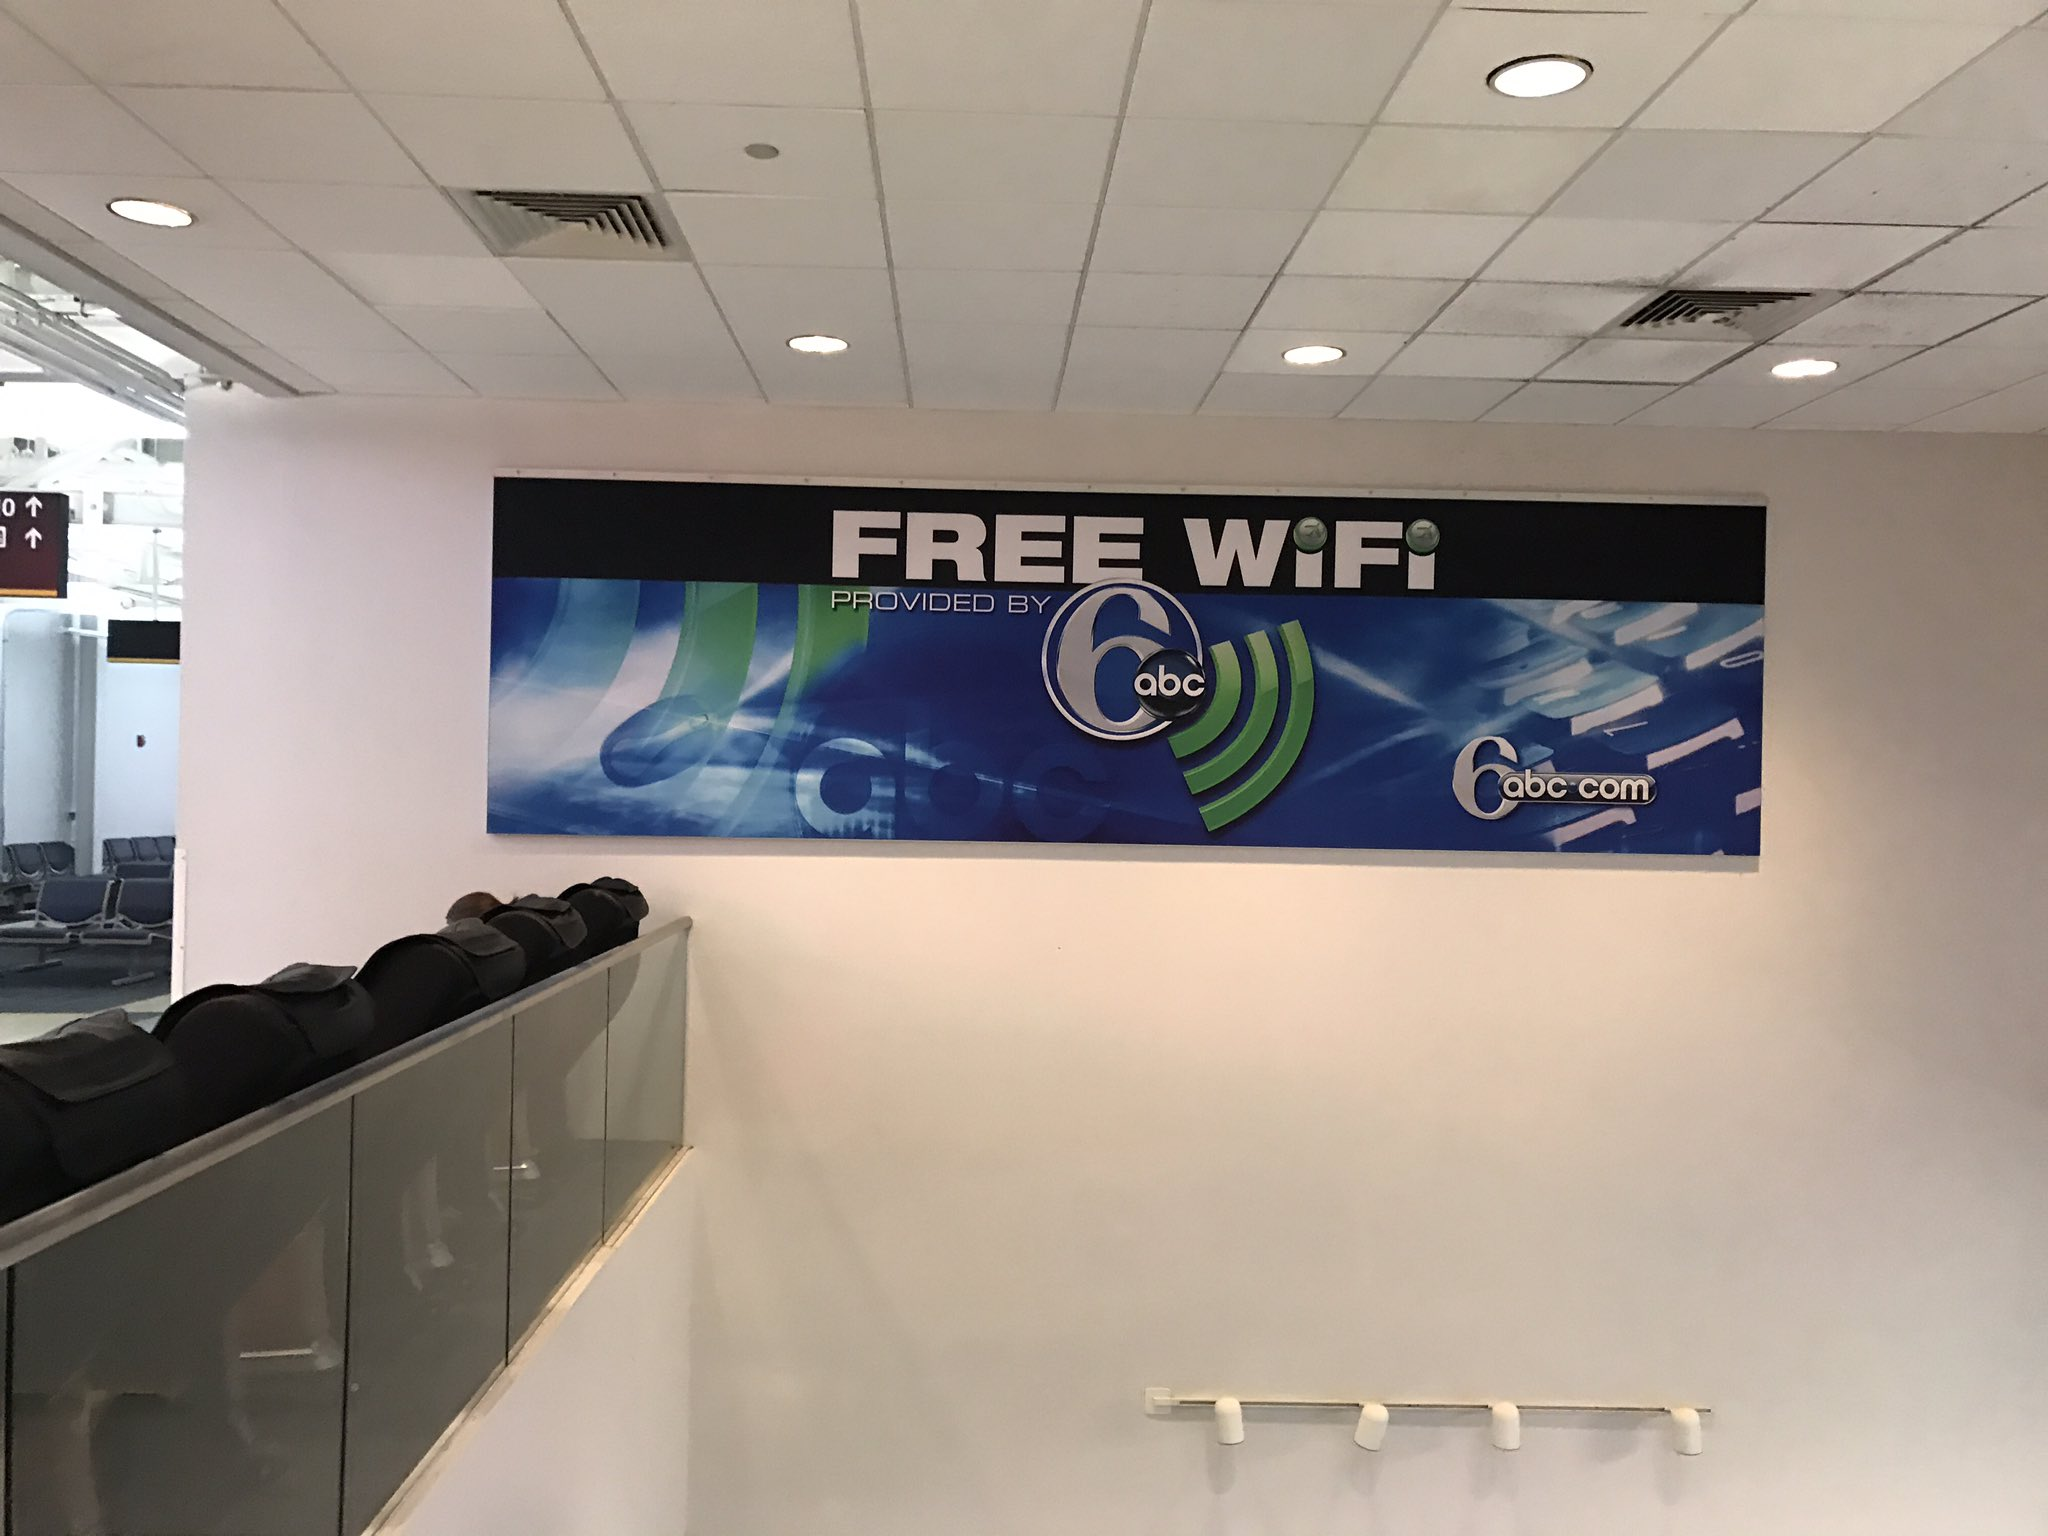 Woo-hoo! Free wifi at the airport thanks to @6abc , now I can get my twittering on ! https://t.co/ohHCZwVBOQ